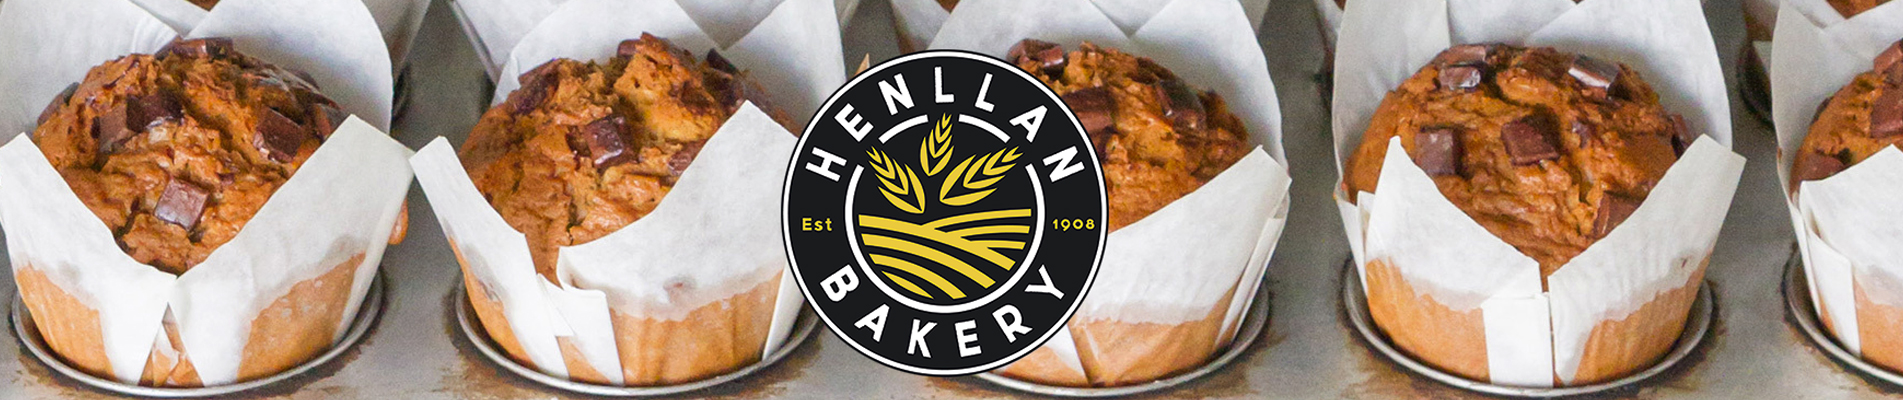 Henllan Bakery chooses Entyce for a brand-new packaging project